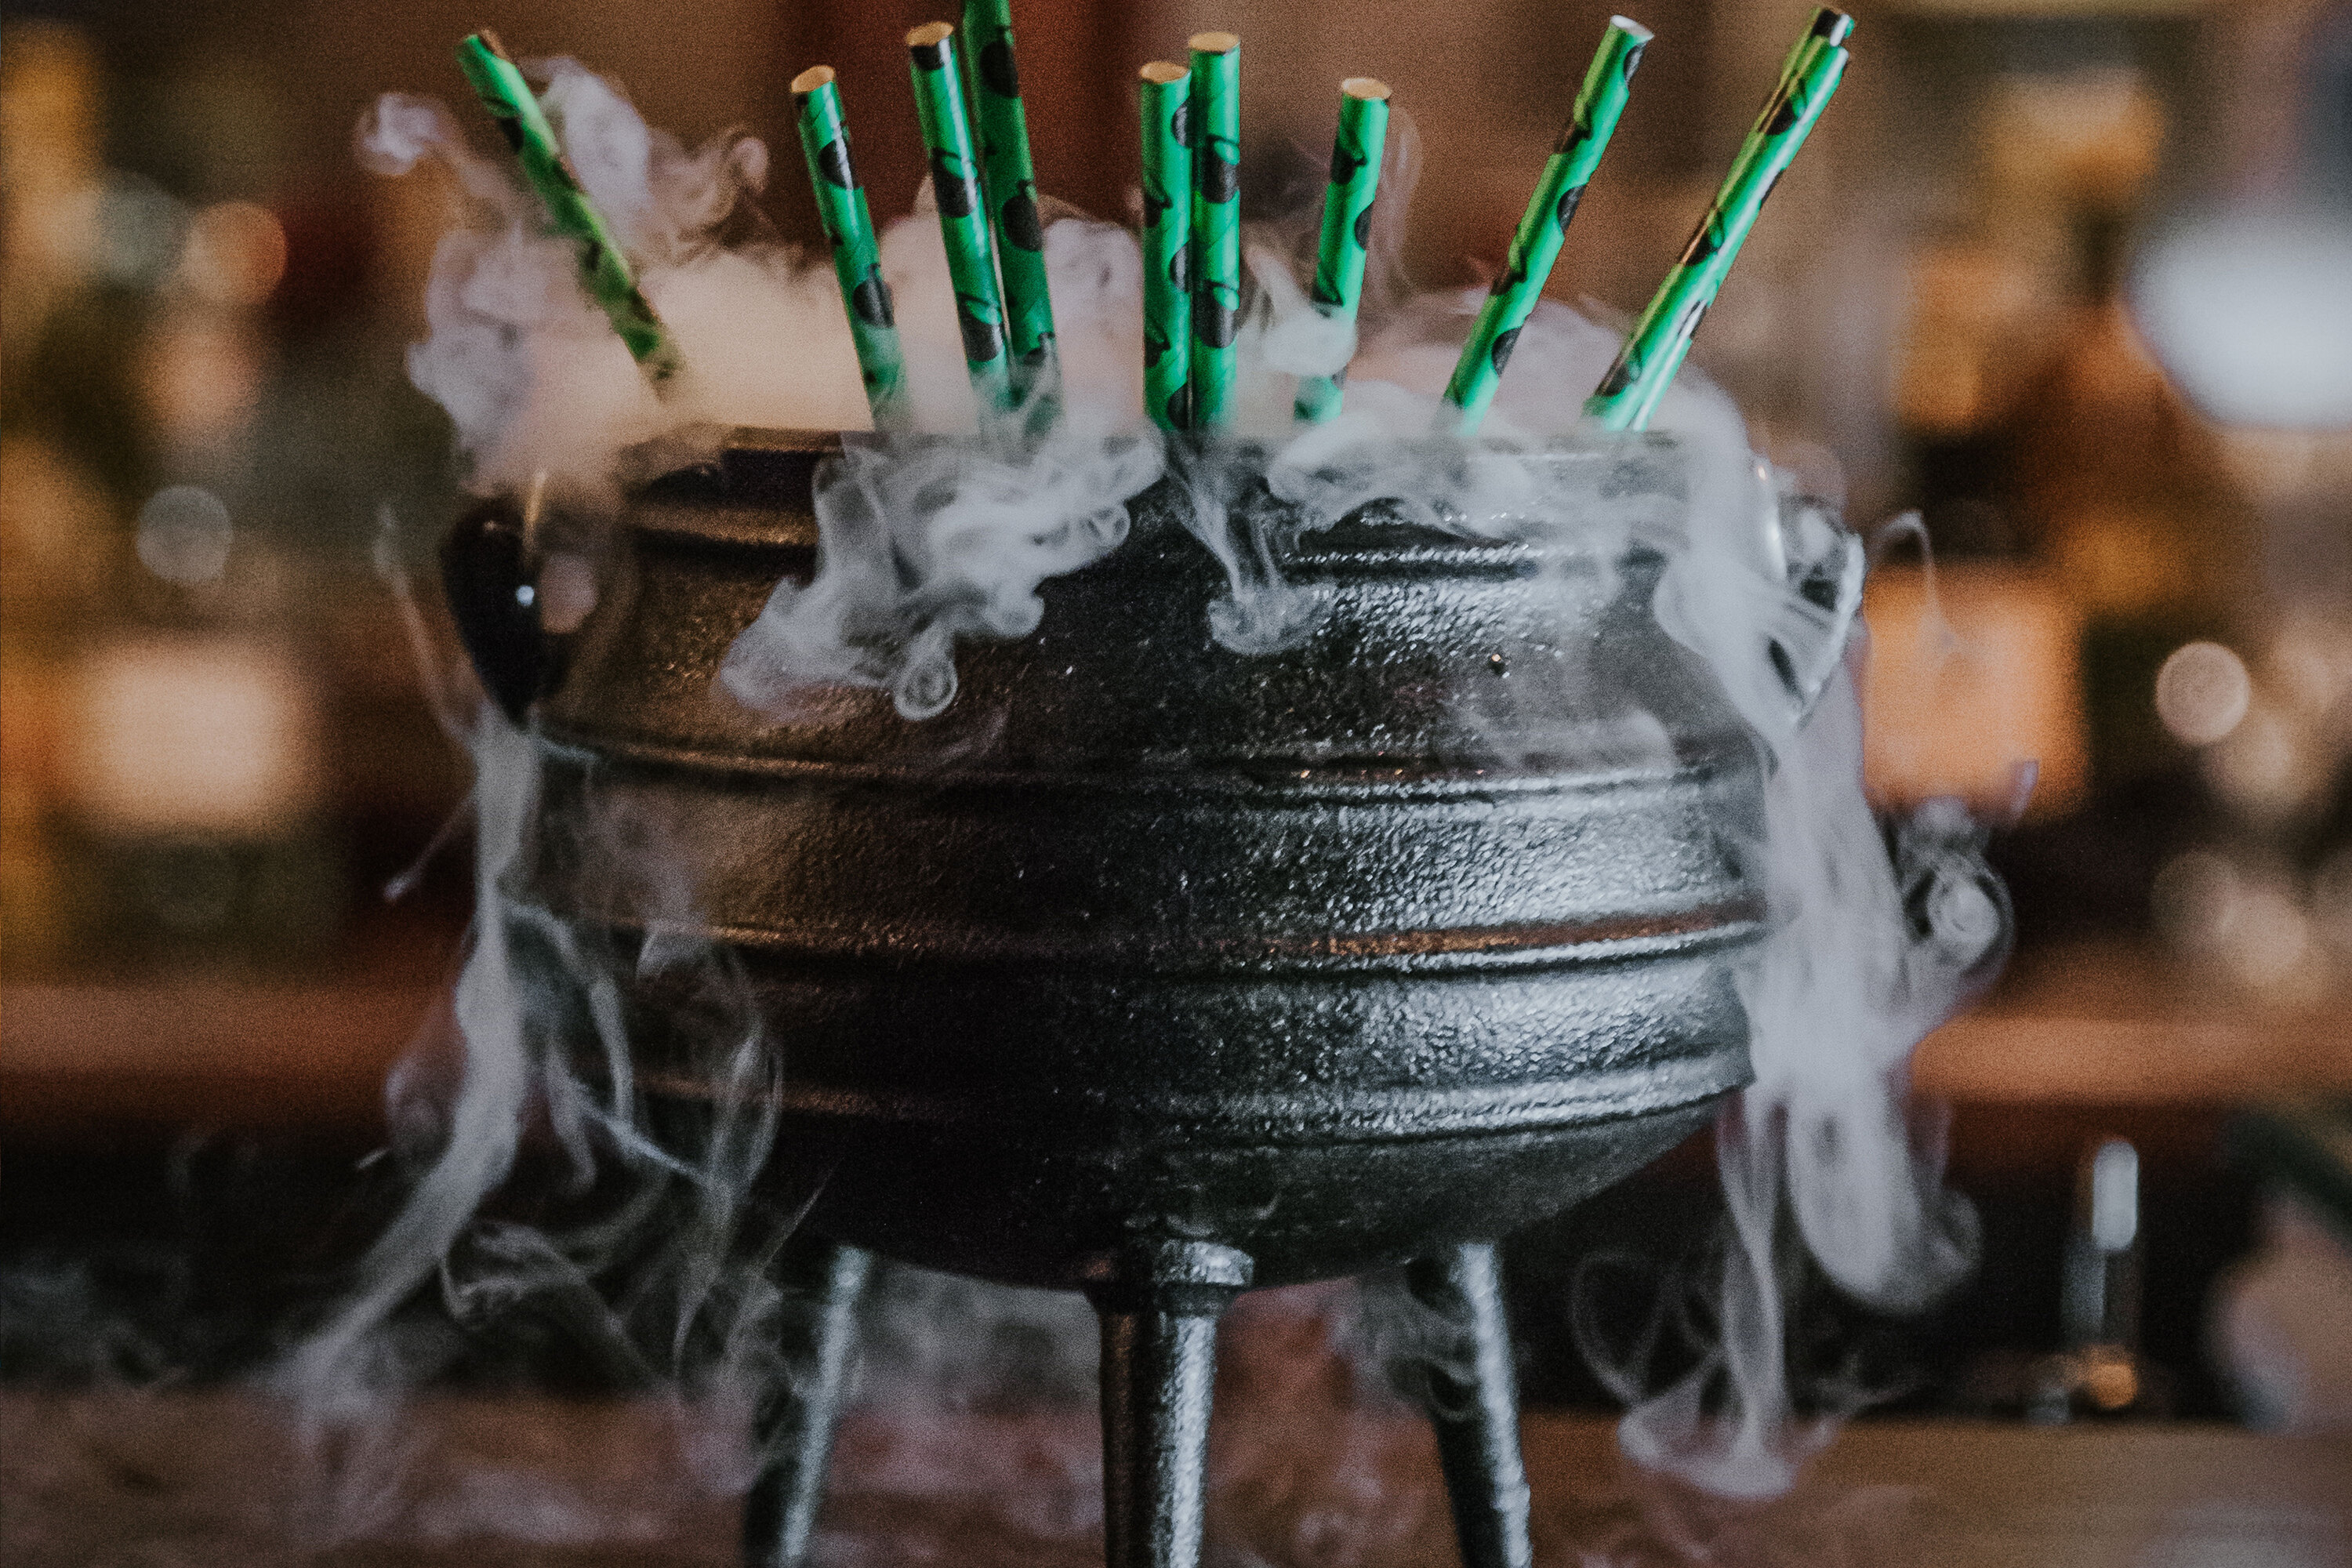 The Three Witches cocktail at The Cauldron in New York